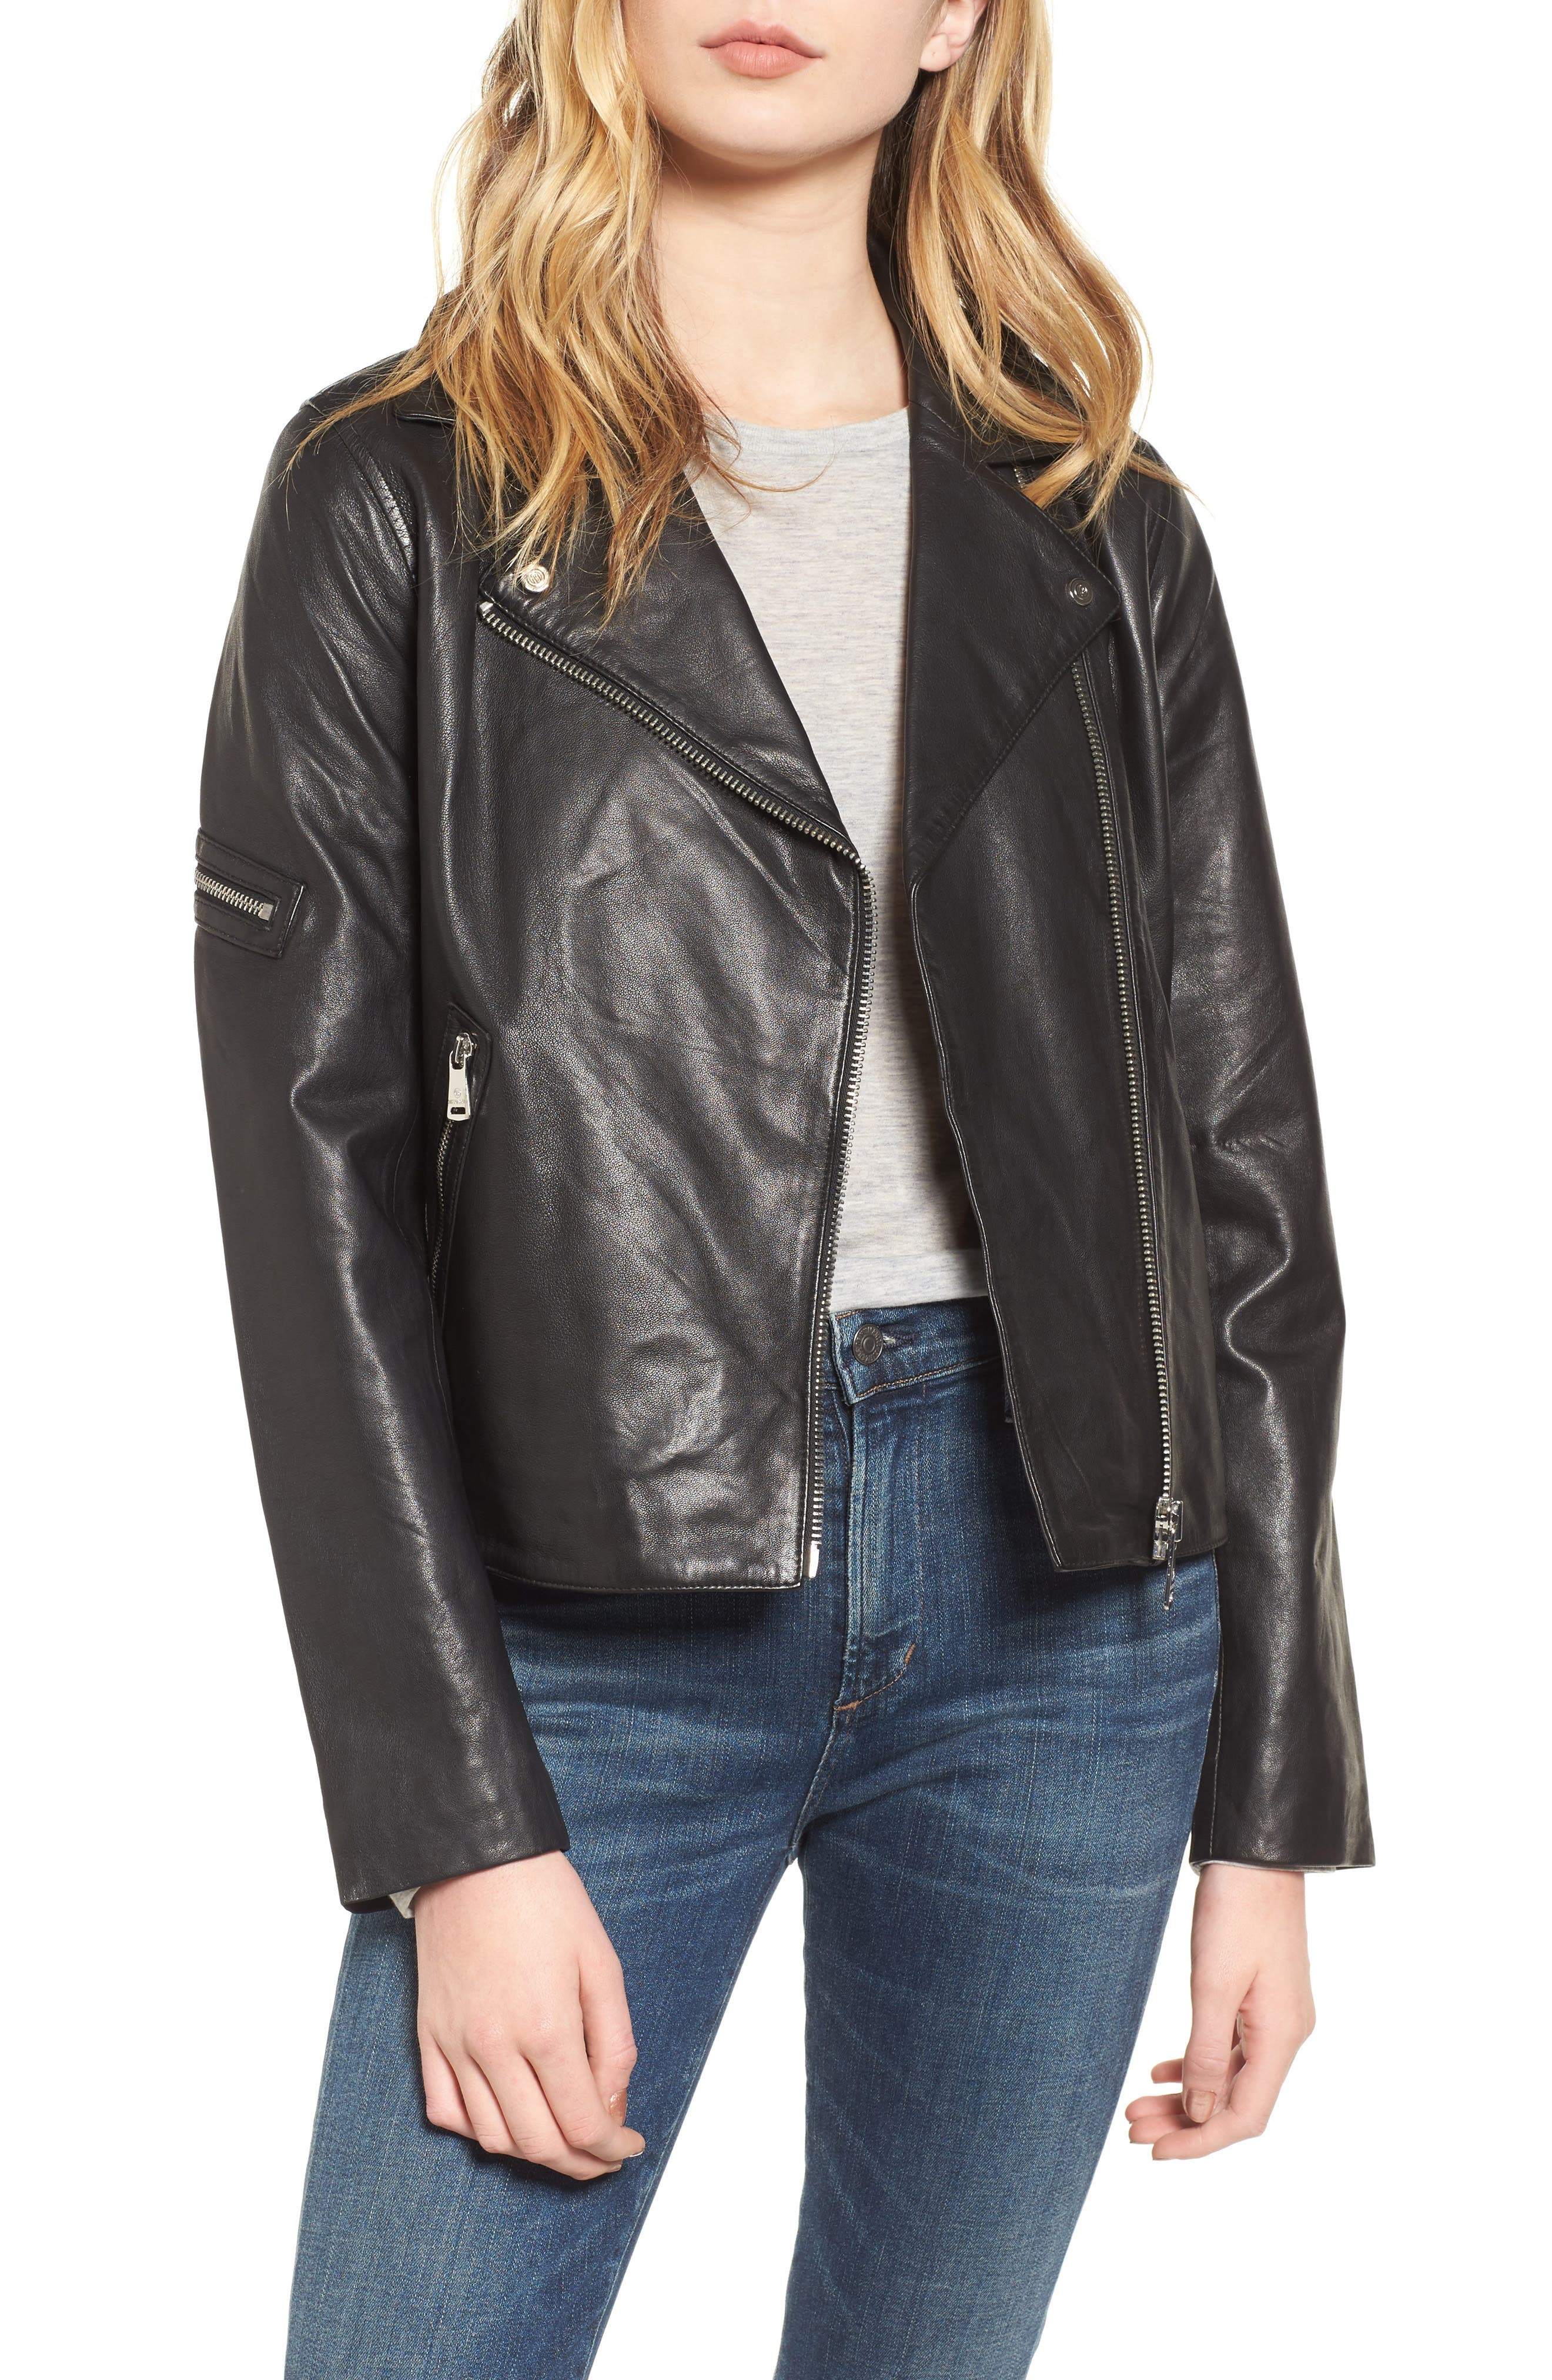 Kirwin Leather Moto Jacket,                         Main,                         color, Black